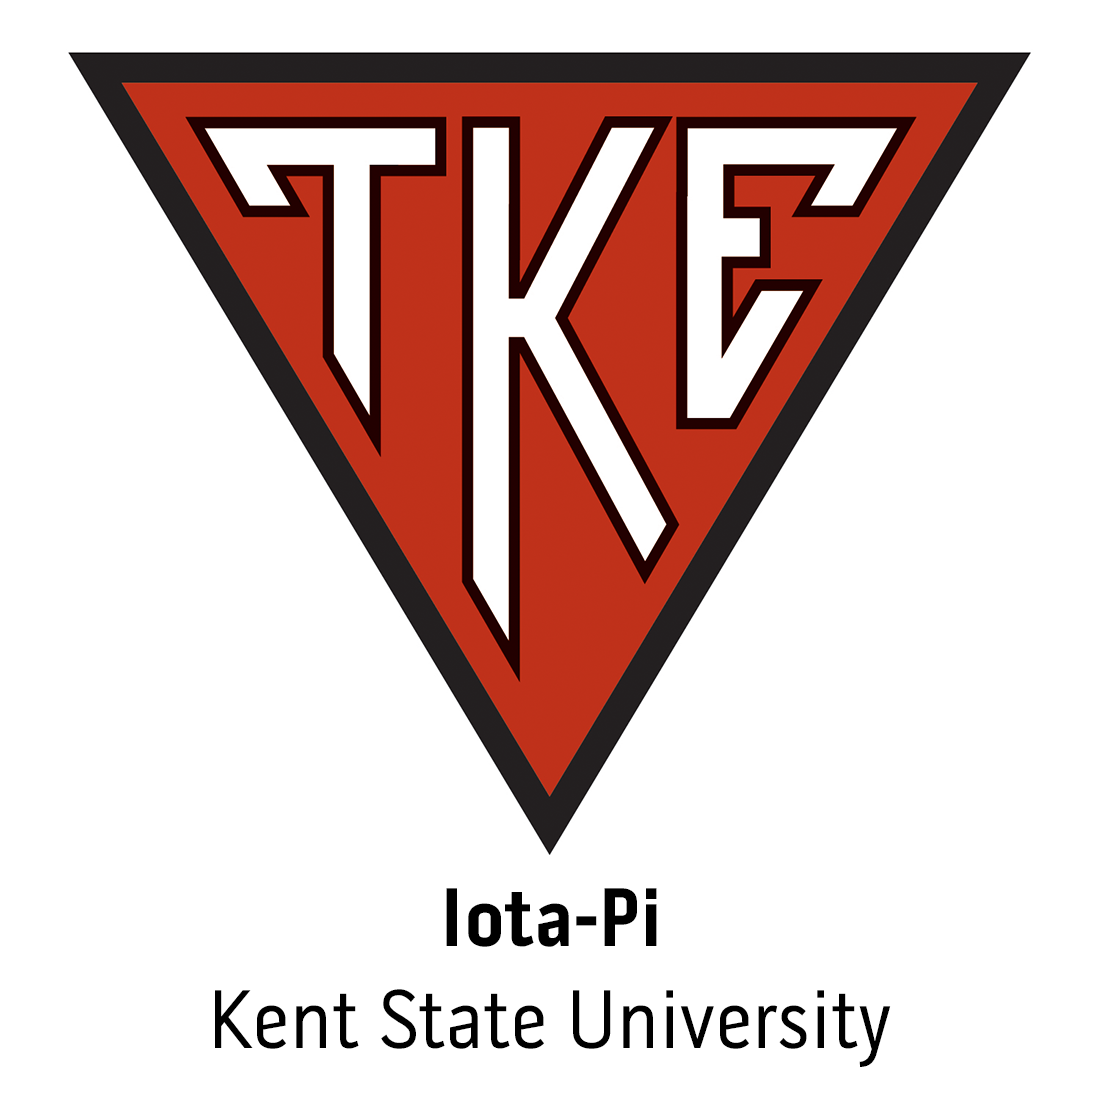 Iota-Pi Chapter at Kent State University